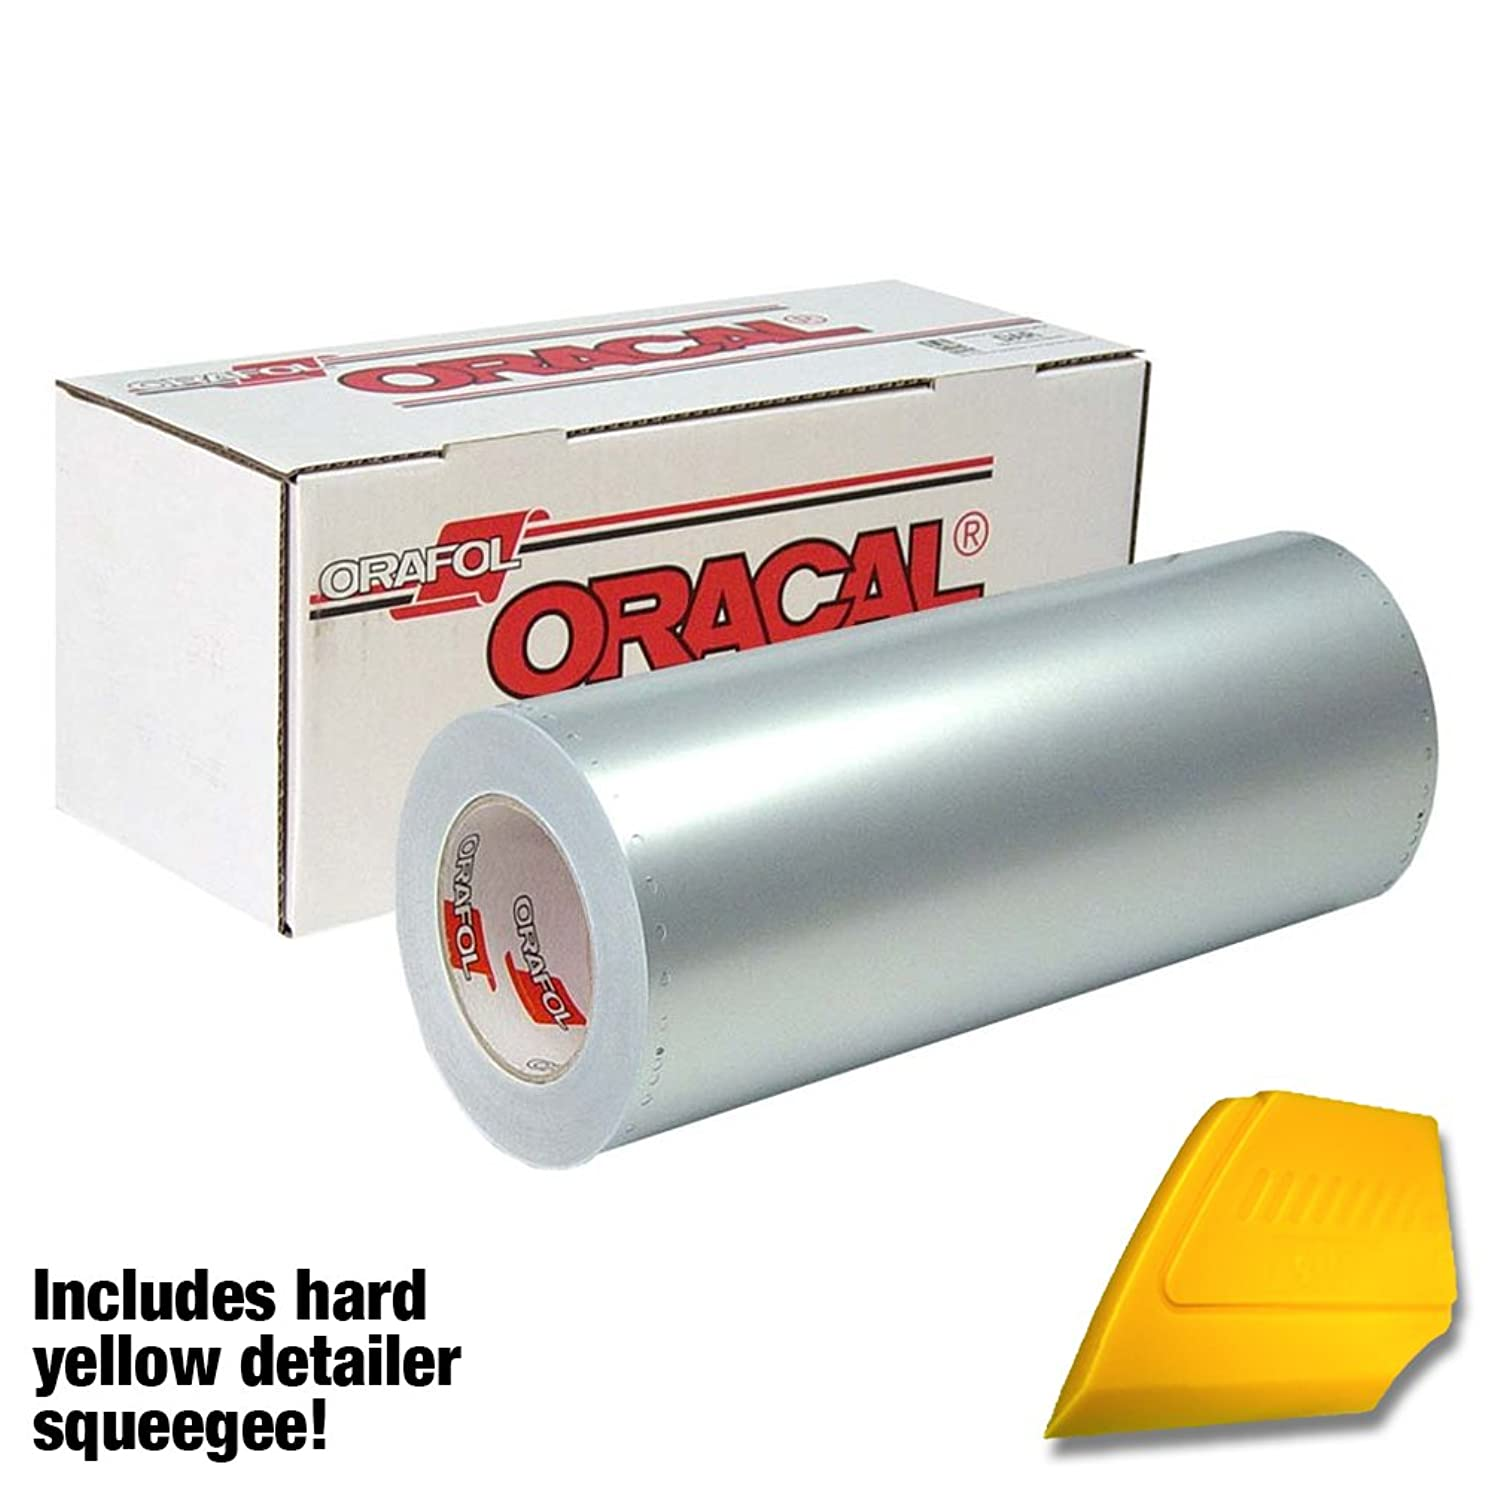 ORACAL Matte Chrome Silver Metallic Vinyl Roll for Cricut, Cameo & Silhouette Including Hard Yellow Detailer Squeegee (3ft x 12